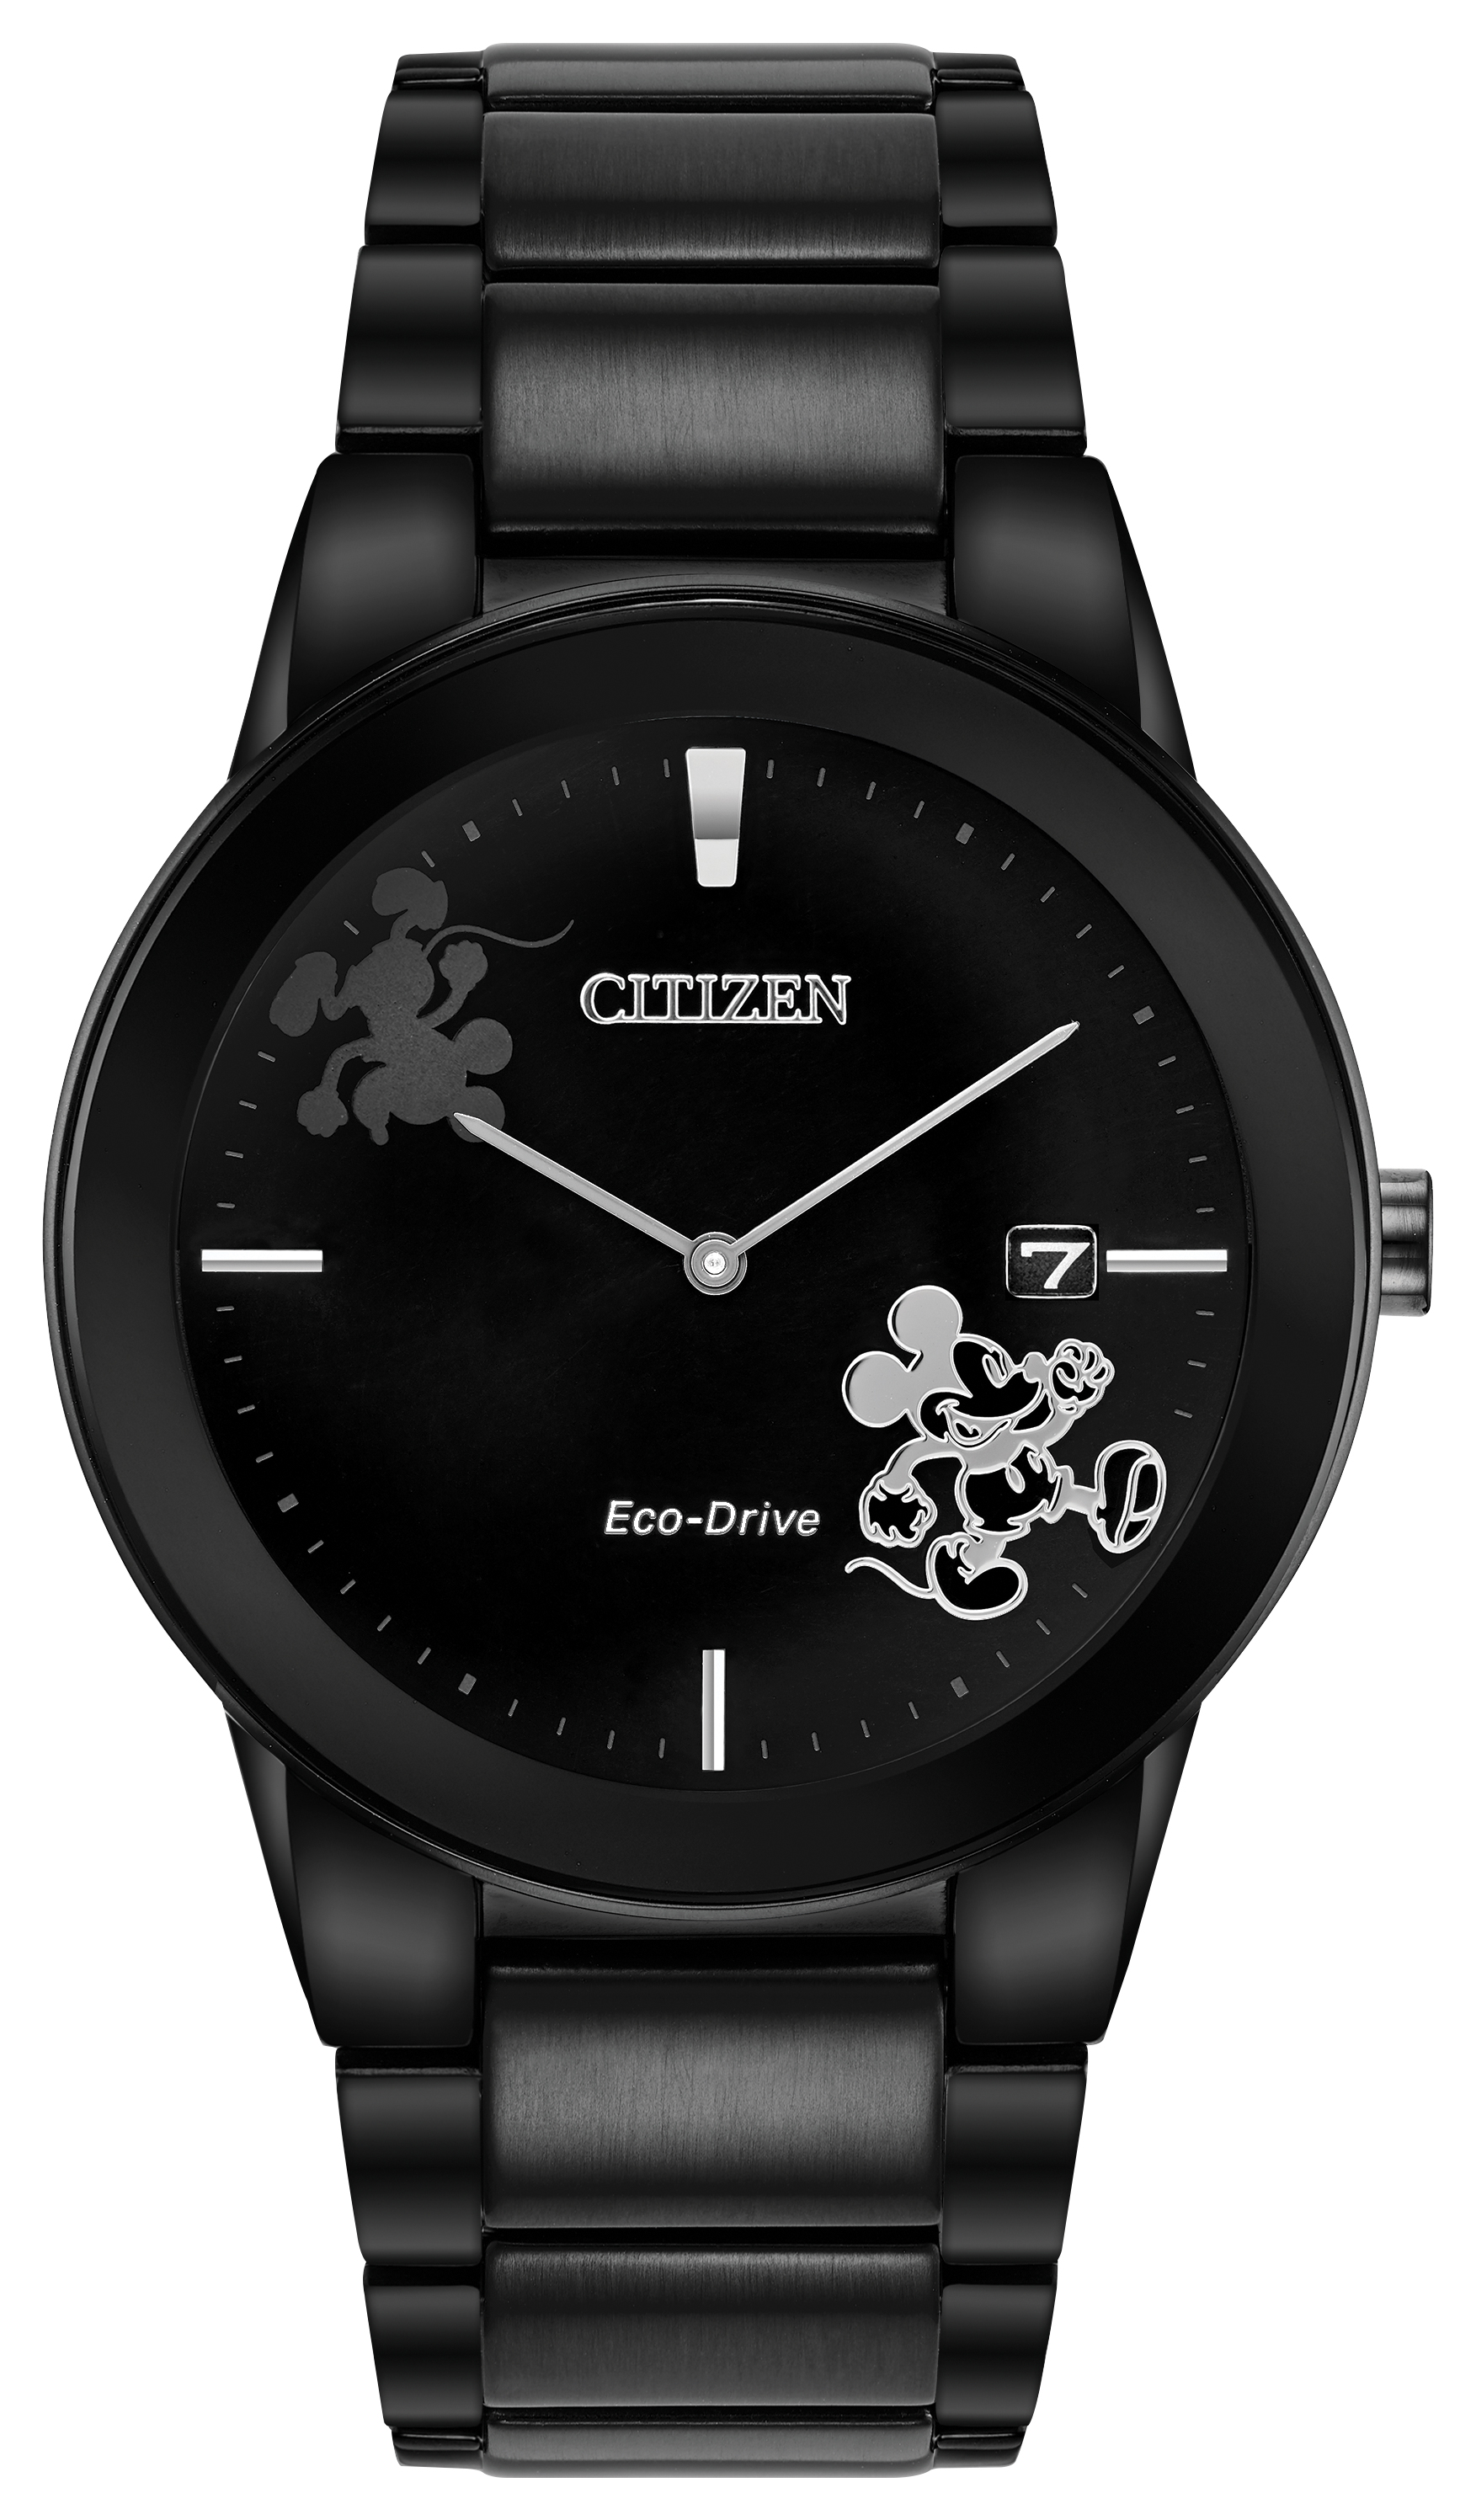 Citizen Mickey timepieces